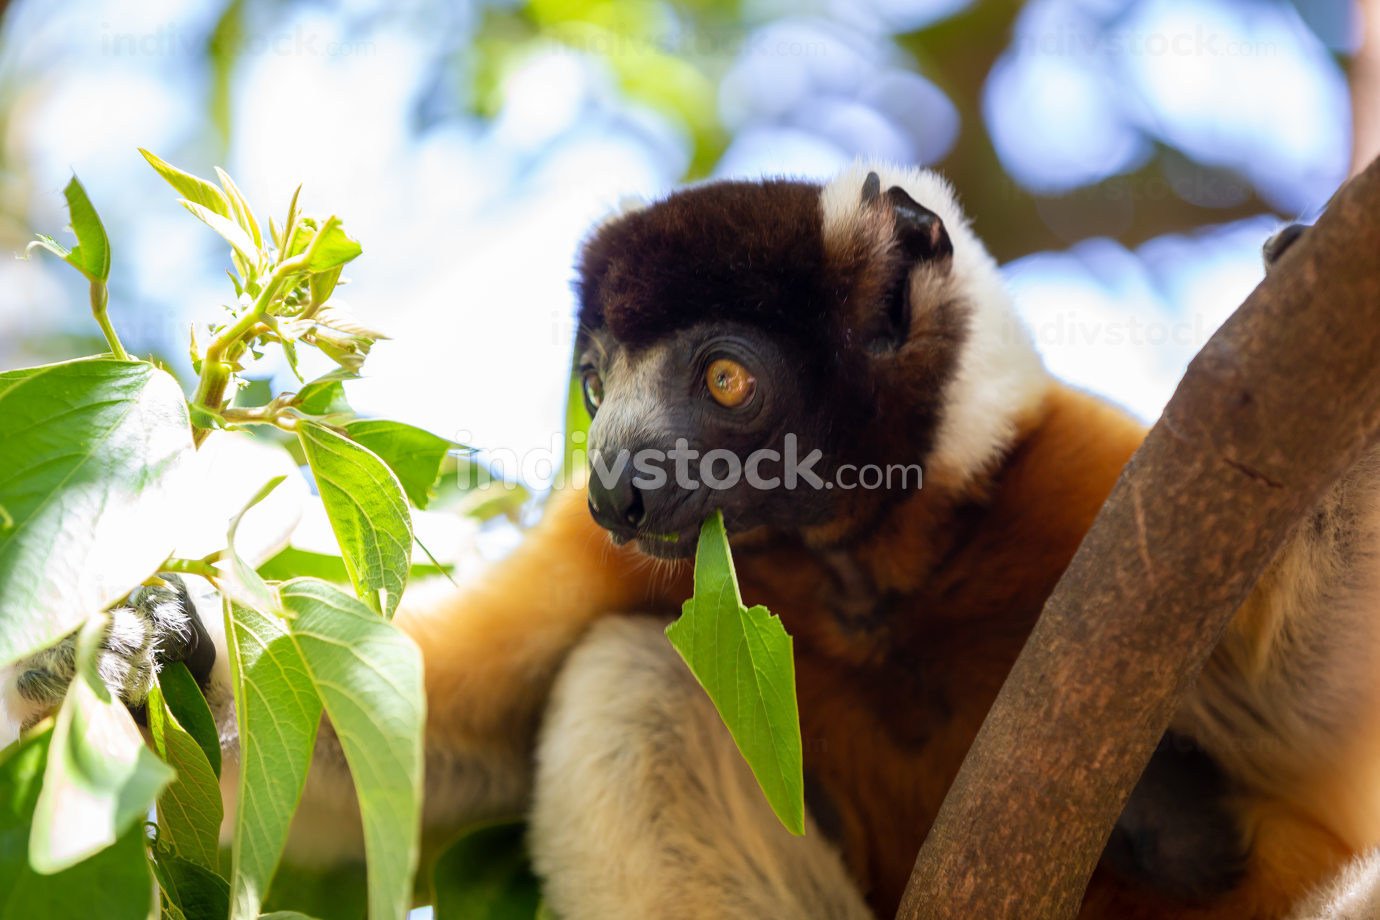 one Sifaka lemur that has made itself comfortable in the treetop